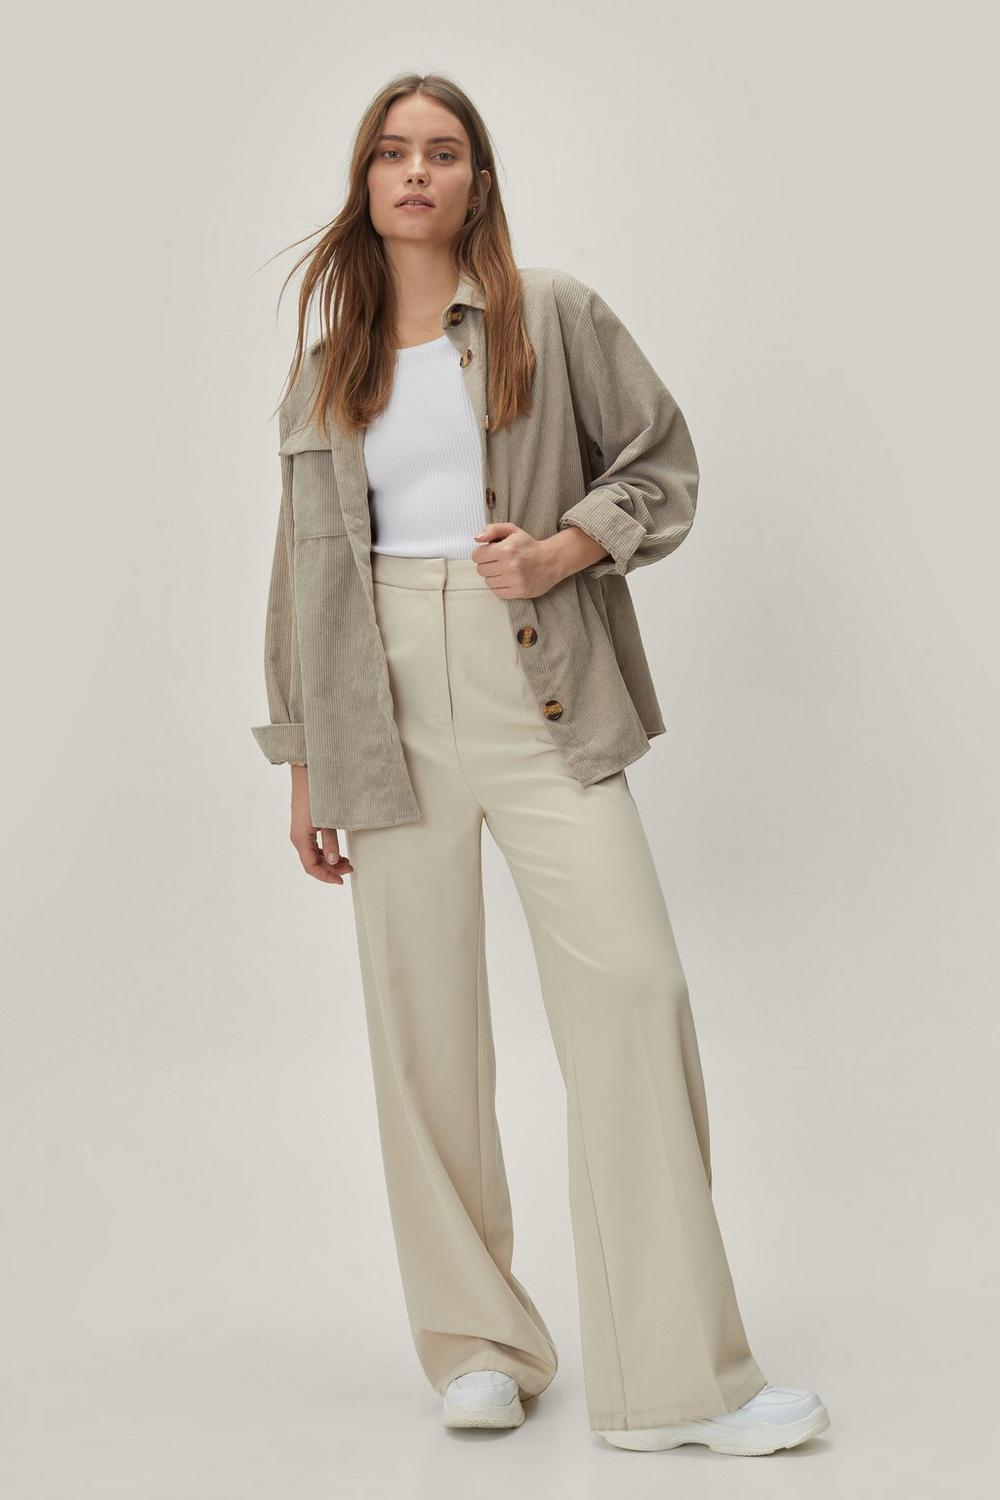 0625dff2a Hover to zoom · Womens Stone Big Cord and Beautiful Oversized Shirt